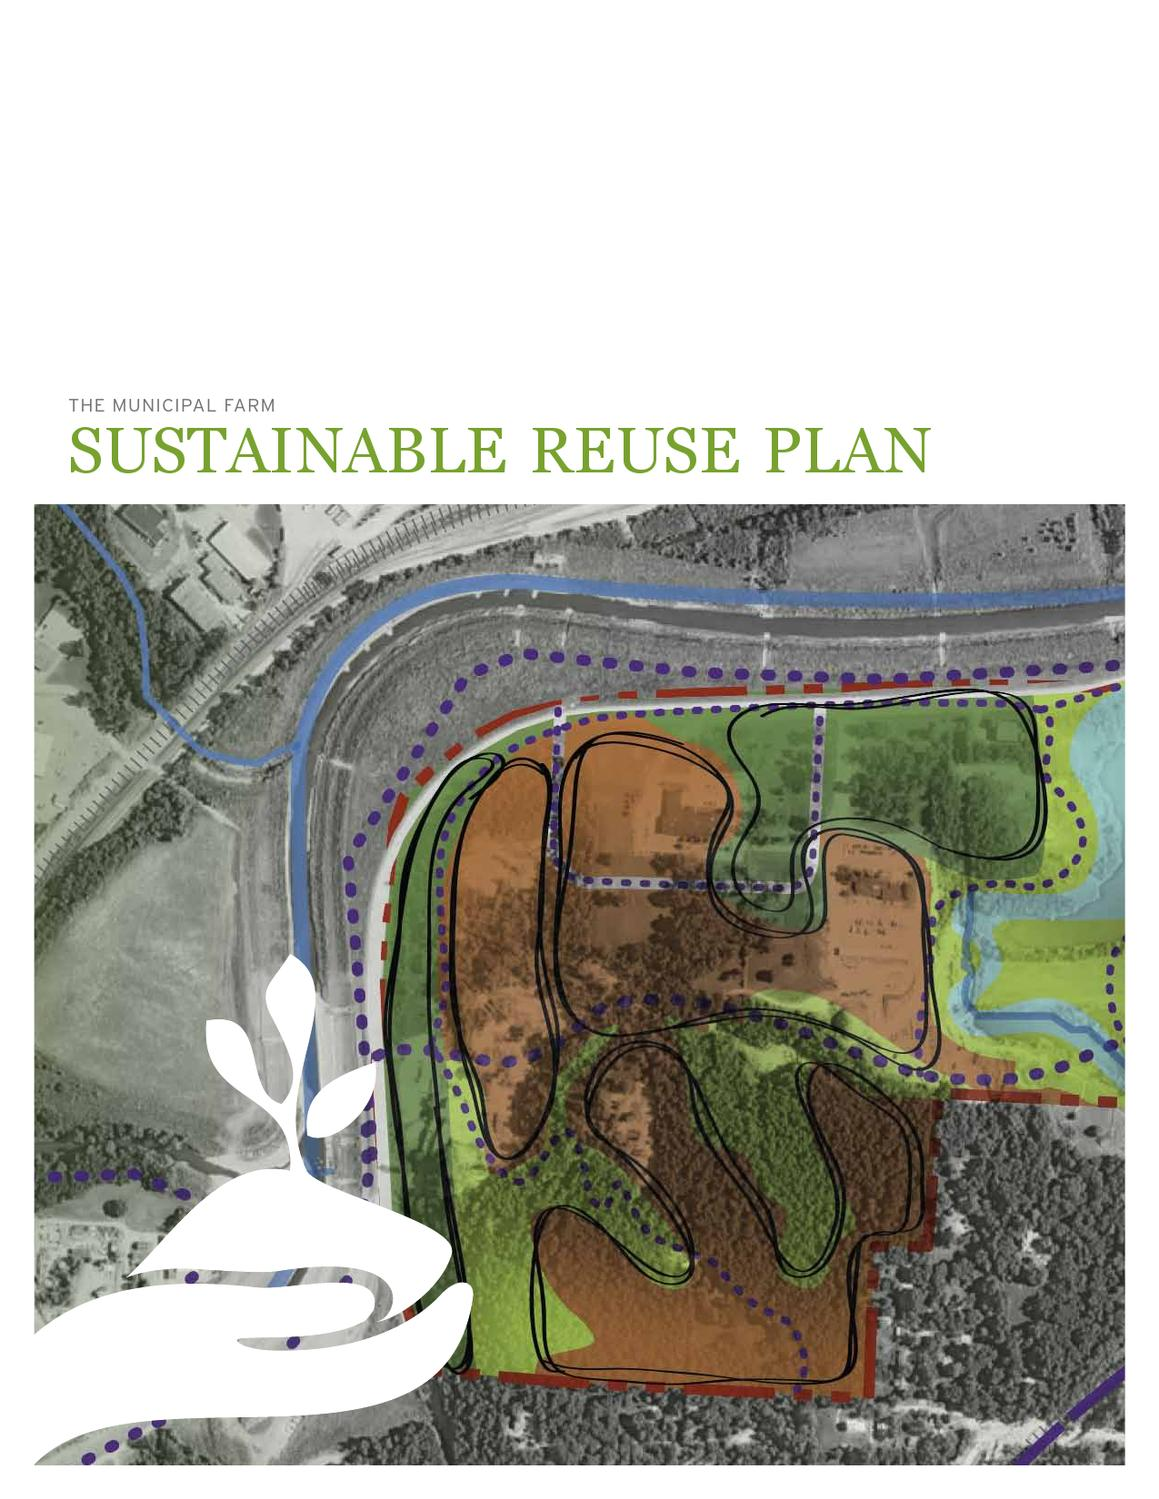 The Municipal Farm Sustainable Reuse Plan Partially Due To My Constraint As Much Of Factory Wiring